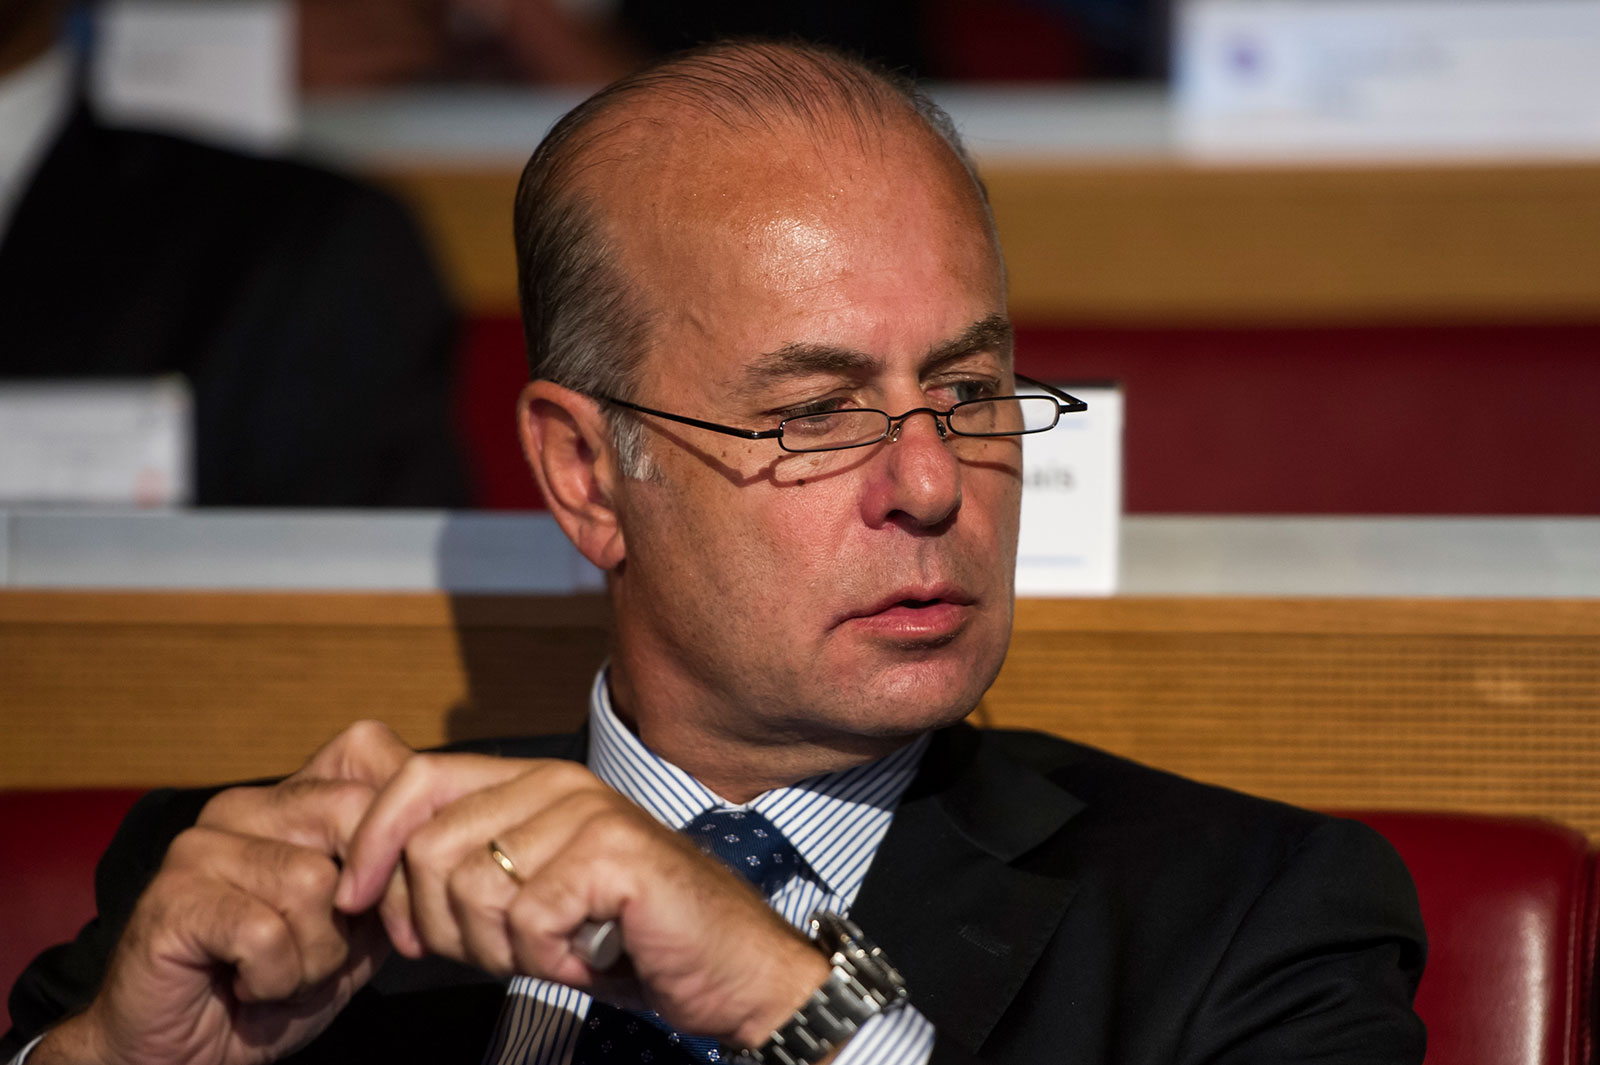 Umberto Gandini on during the UEFA Champions League 2013/14 play-off draw at UEFA headquarters on August 9, 2013 in Nyon, Switzerland. (Photo by Harold Cunningham/Getty Images)